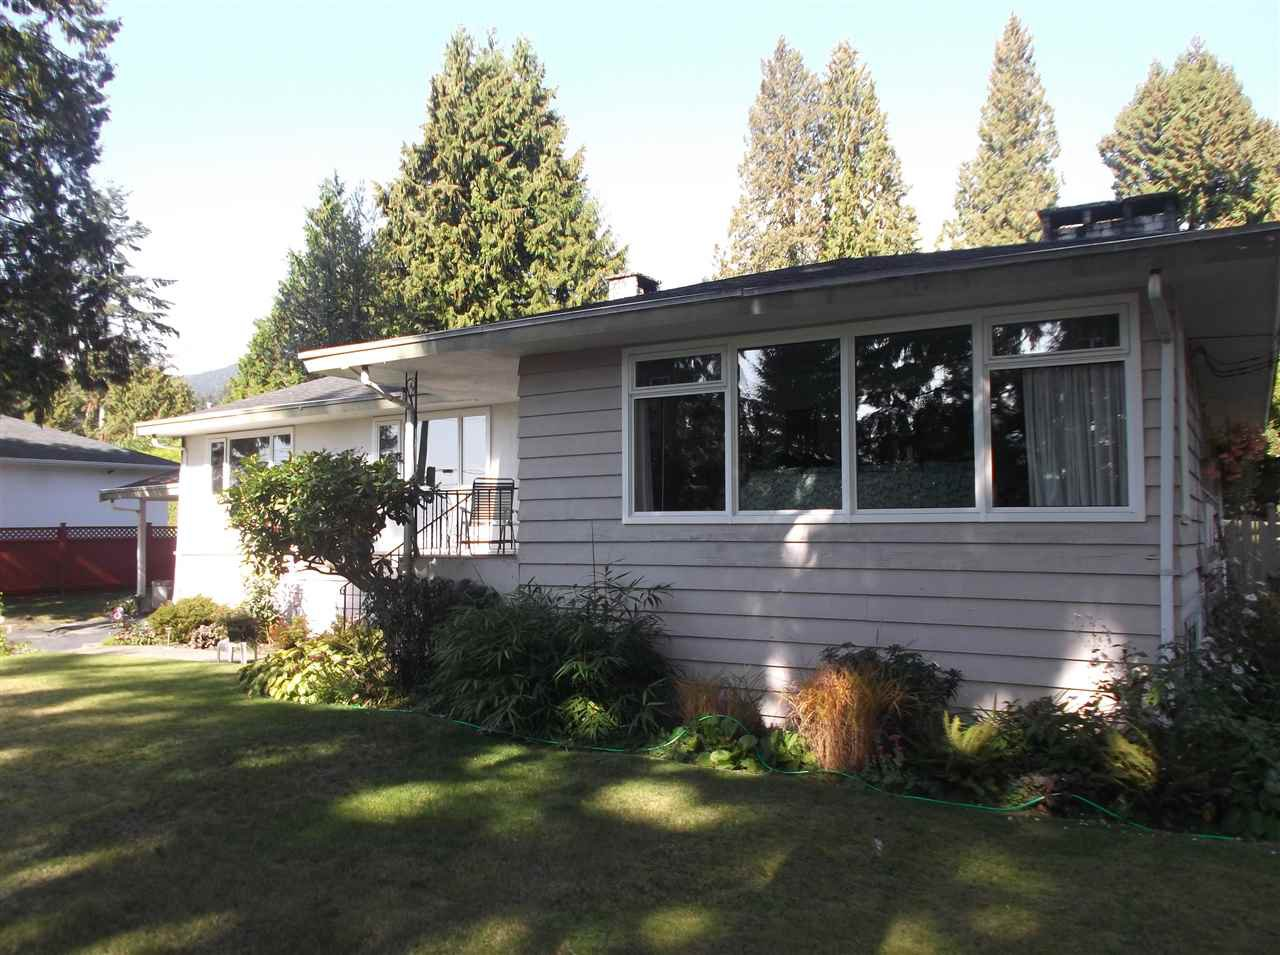 Main Photo: 1655 PALMERSTON Avenue in West Vancouver: Ambleside House for sale : MLS®# R2125662